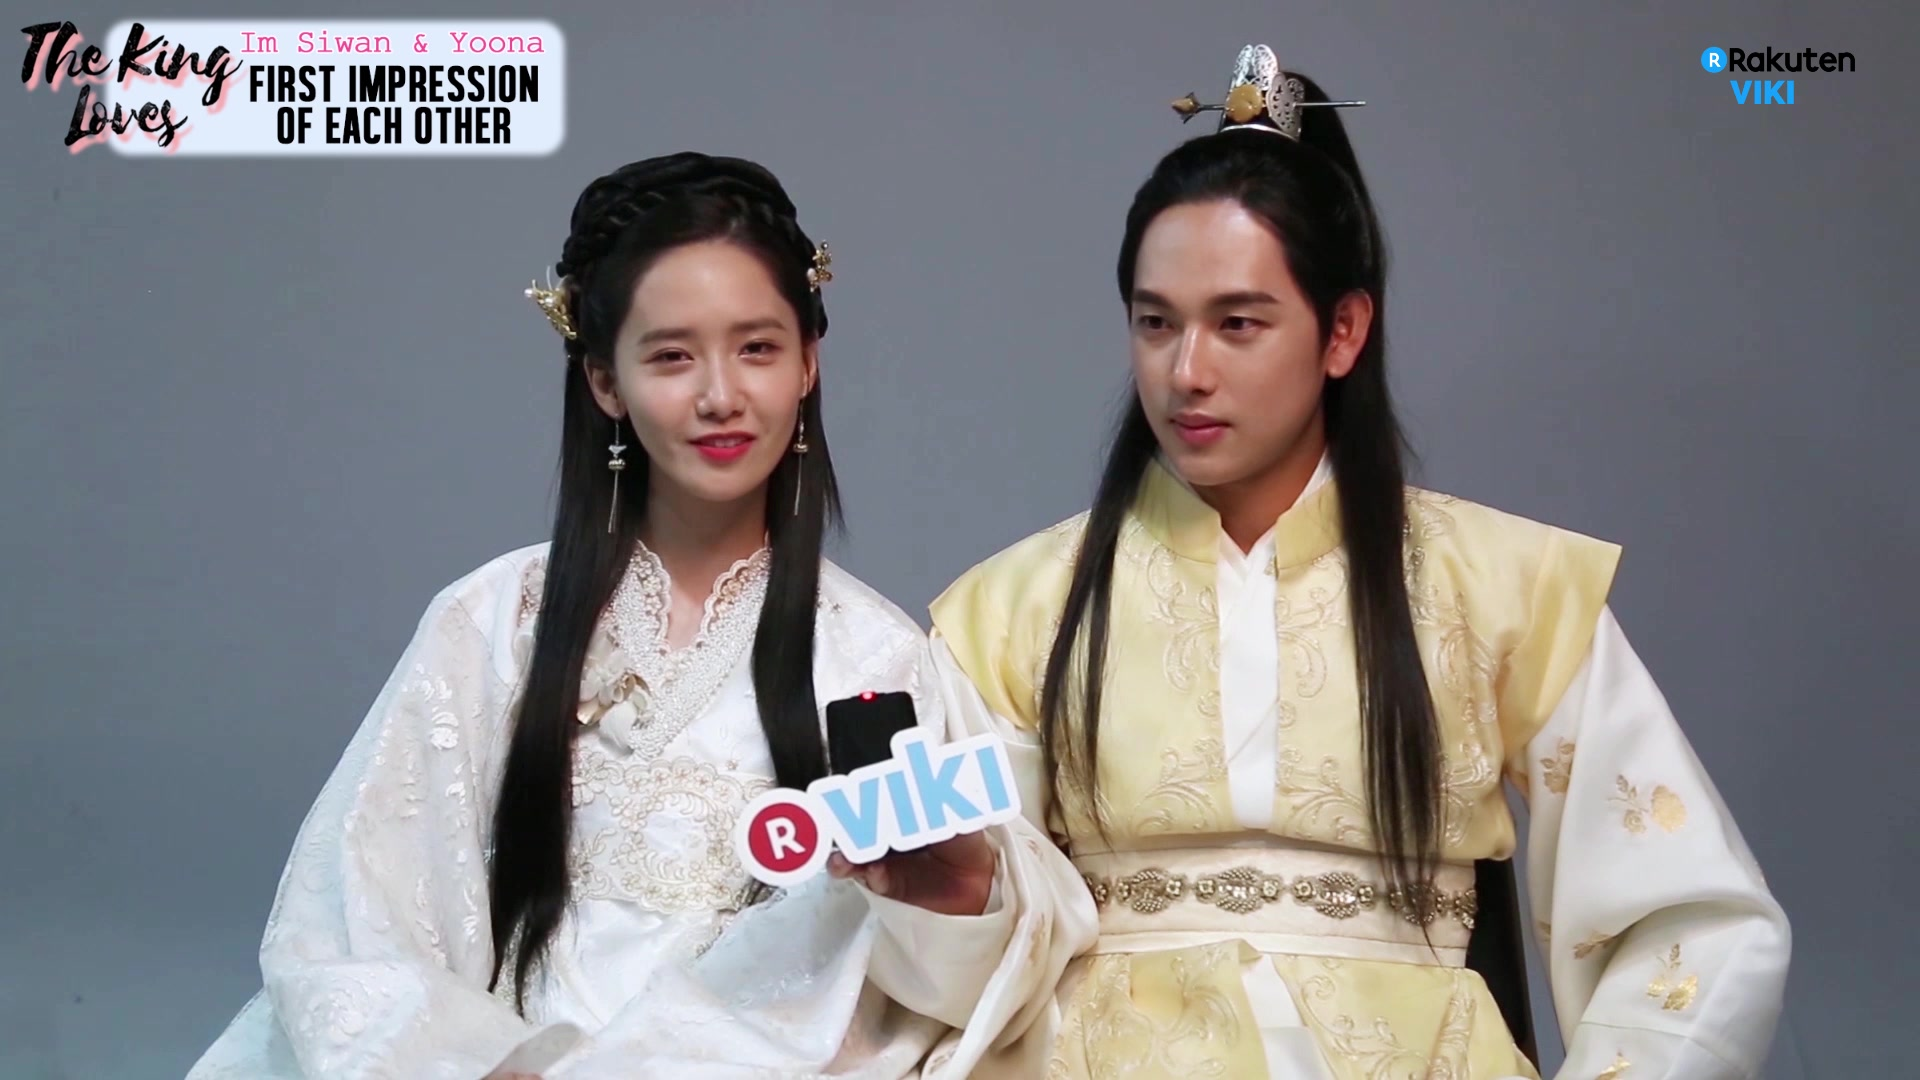 Exclusive Interview with Im Siwan and Yoona: The King Loves